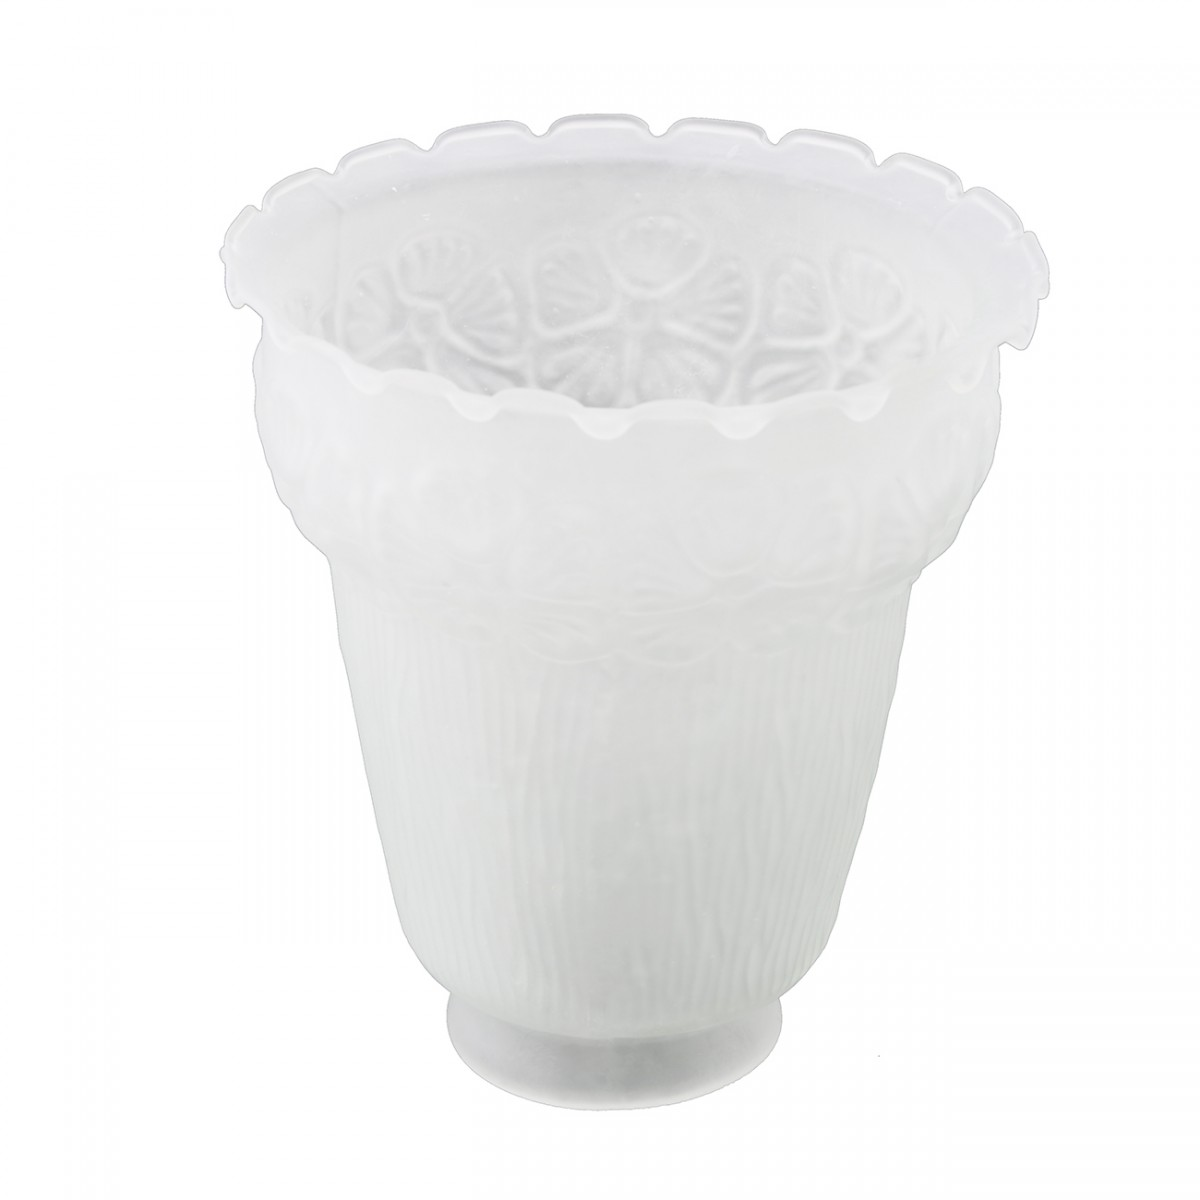 4 Lamp Shade Frosted Glass Flowers Bell 5 12 H 2 14 Fitter Lamp Shades Lamp Shade Glass Lamp Shade